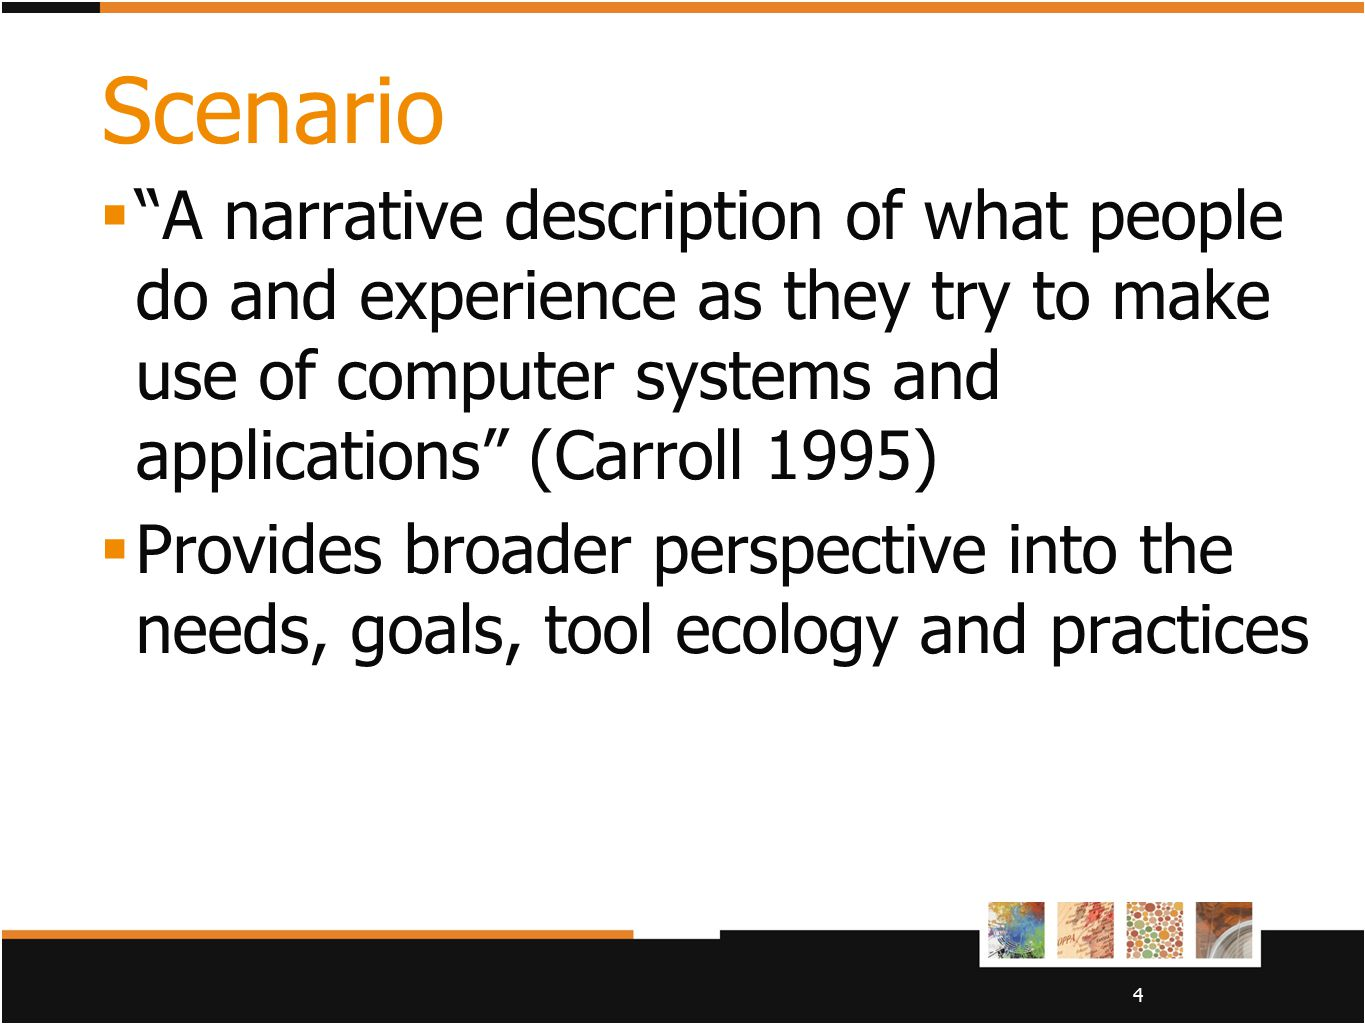 5 The goal is to obtain insight into the attributes of an experience that would help or delight people based on research evidence (Hawley 2009).